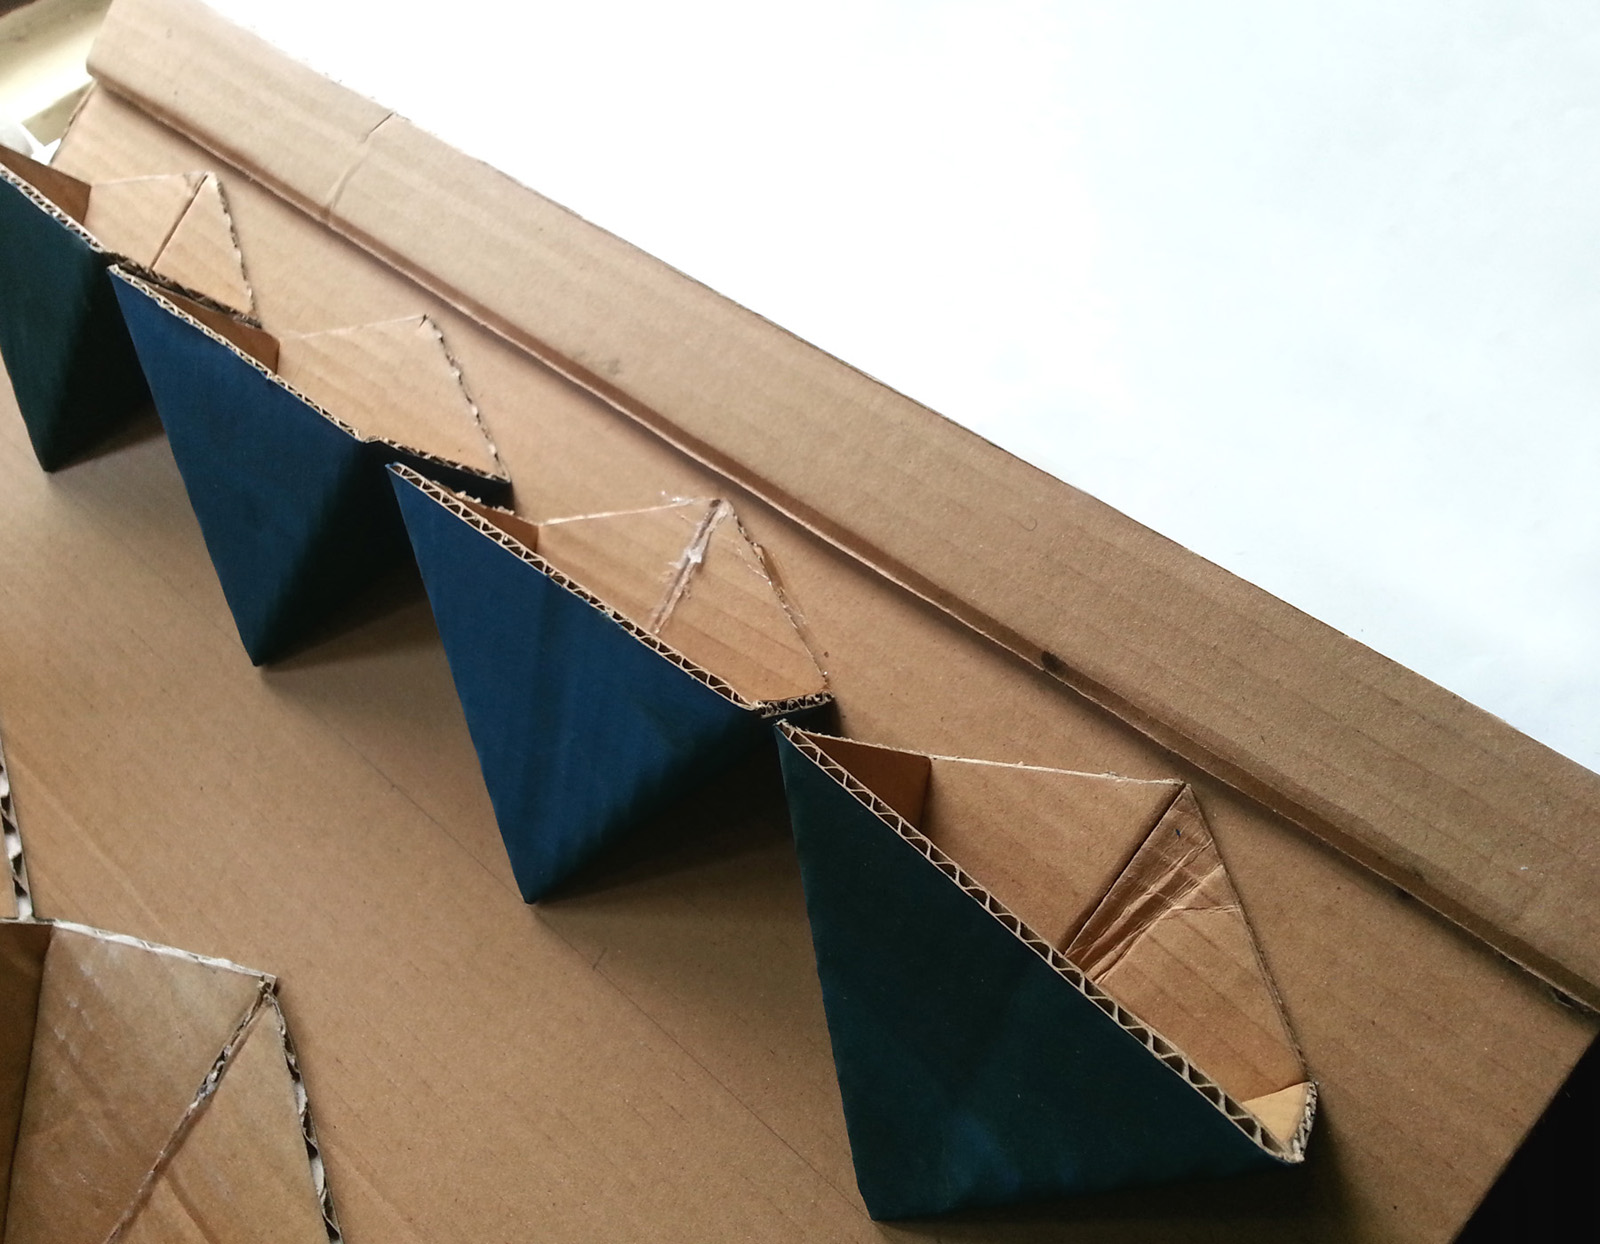 Picture of Attaching Hanging Mechanism